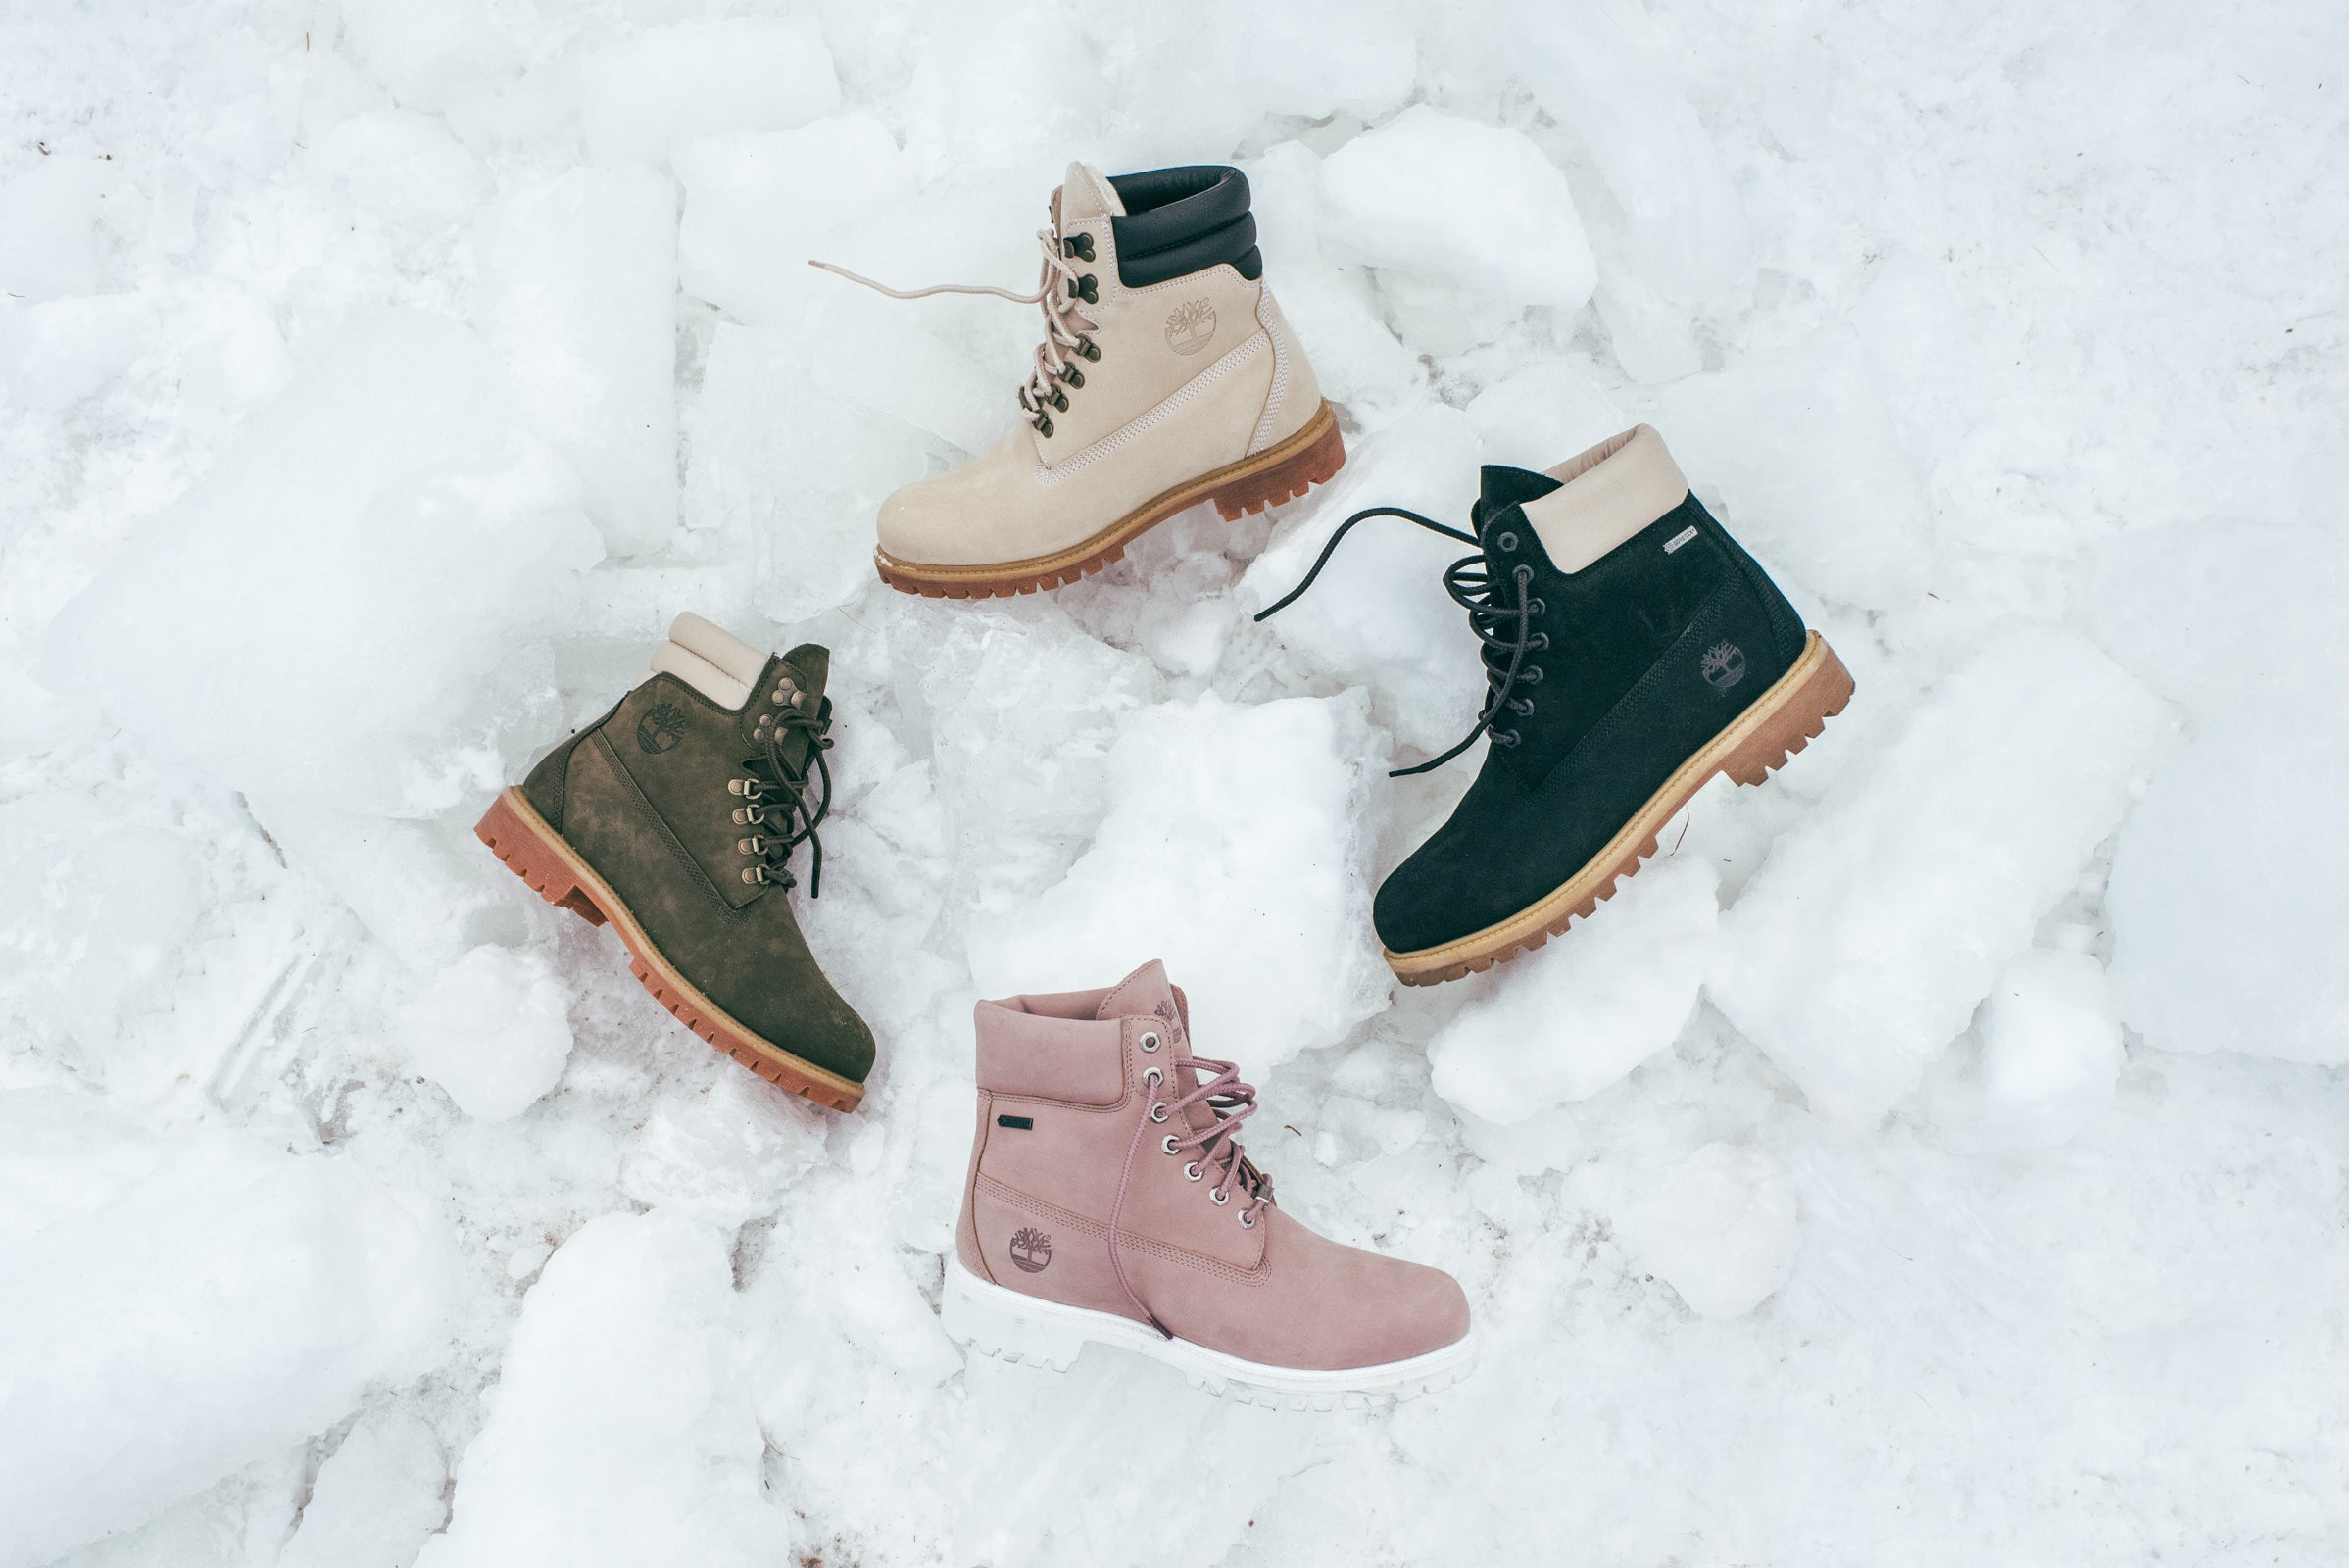 b0e74743075 Ronnie Fieg x Timberland Collection for Kith Aspen. December 14